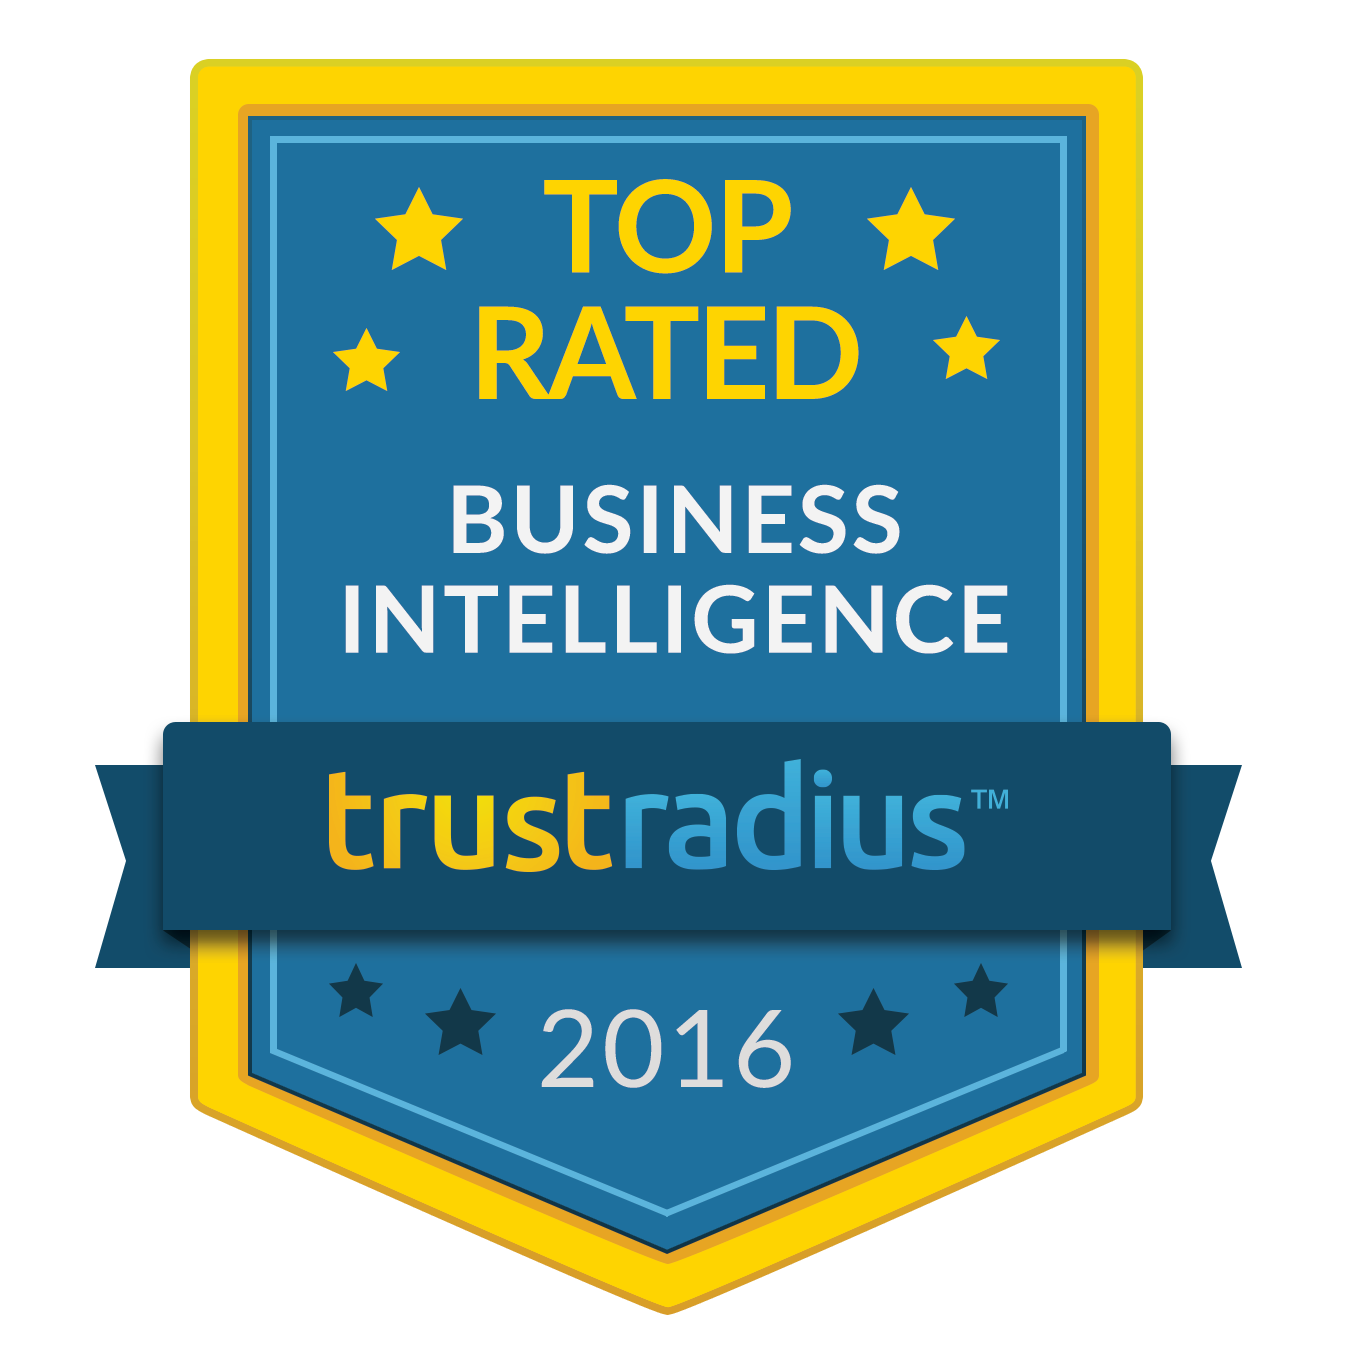 dundas data visualization trust radius top rated BI tool badge